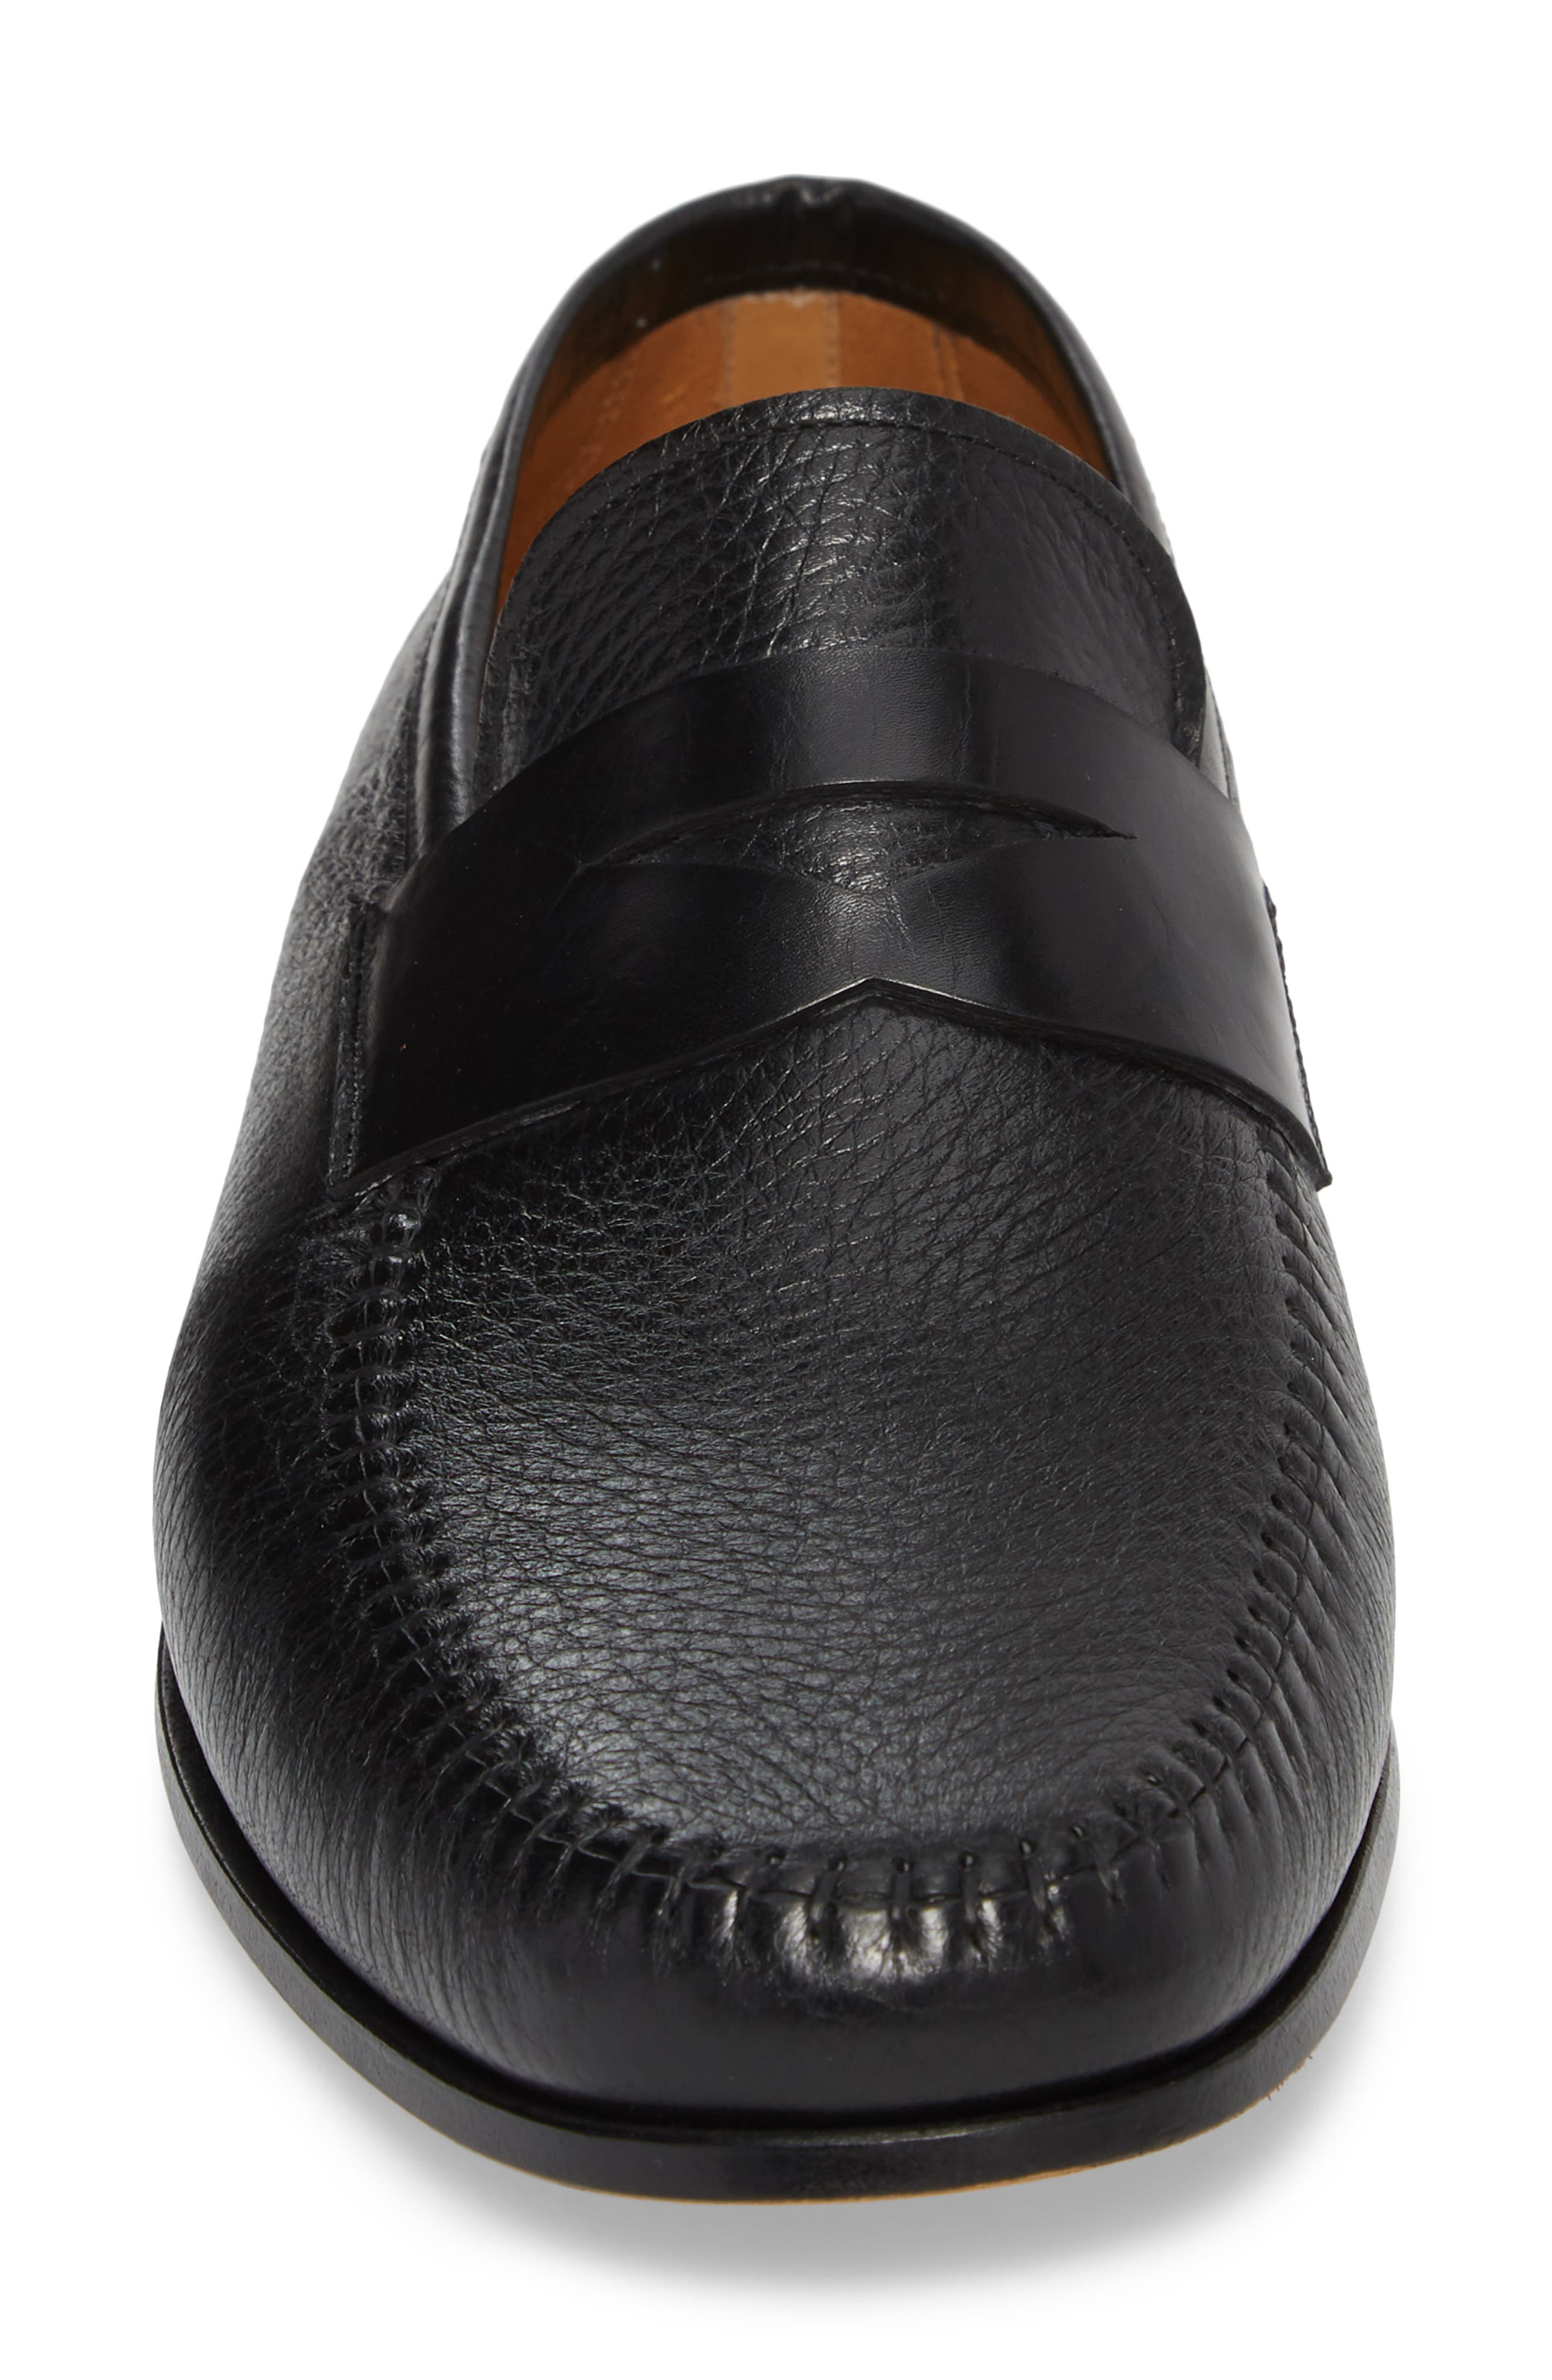 MAGNANNI,                             Ramos Moc Toe Penny Loafer,                             Alternate thumbnail 4, color,                             BLACK/BLACK LEATHER